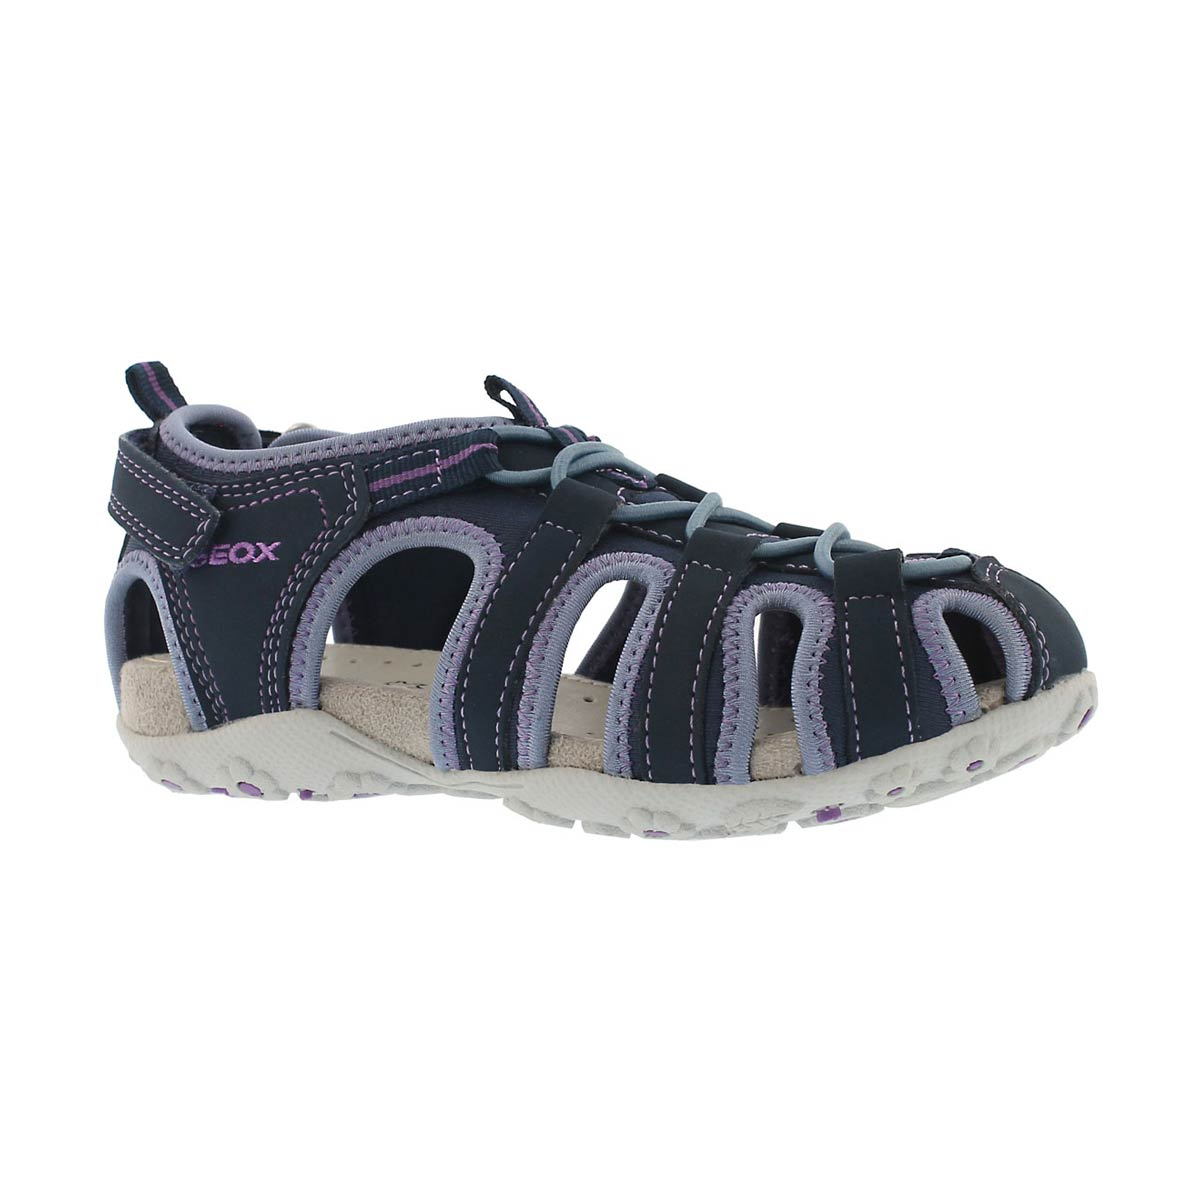 Girls' ROXANNE navy clsoed toe sandals